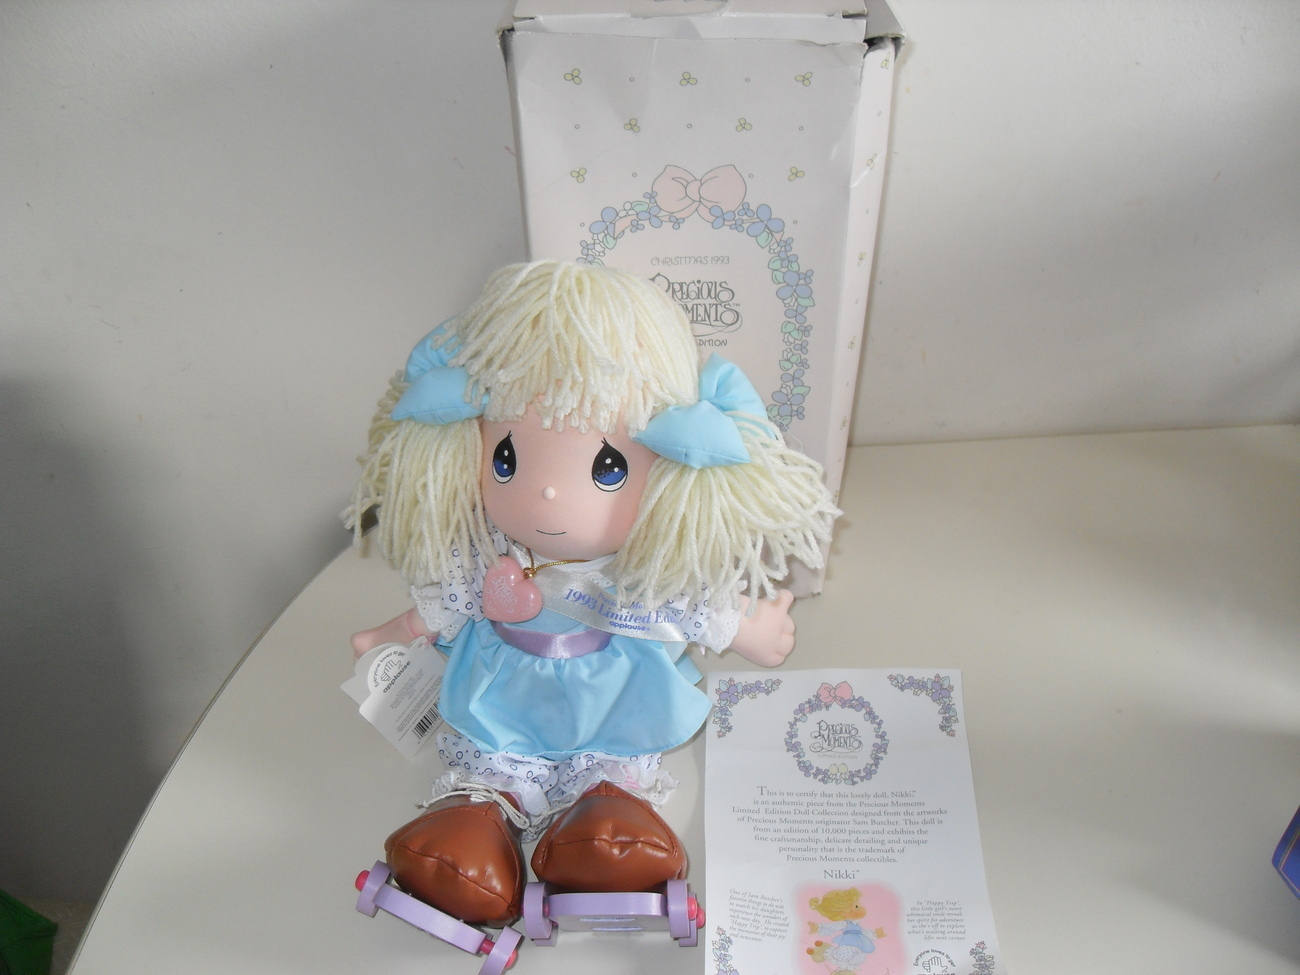 1993 Precious Moments Nikki Doll Limited Edition